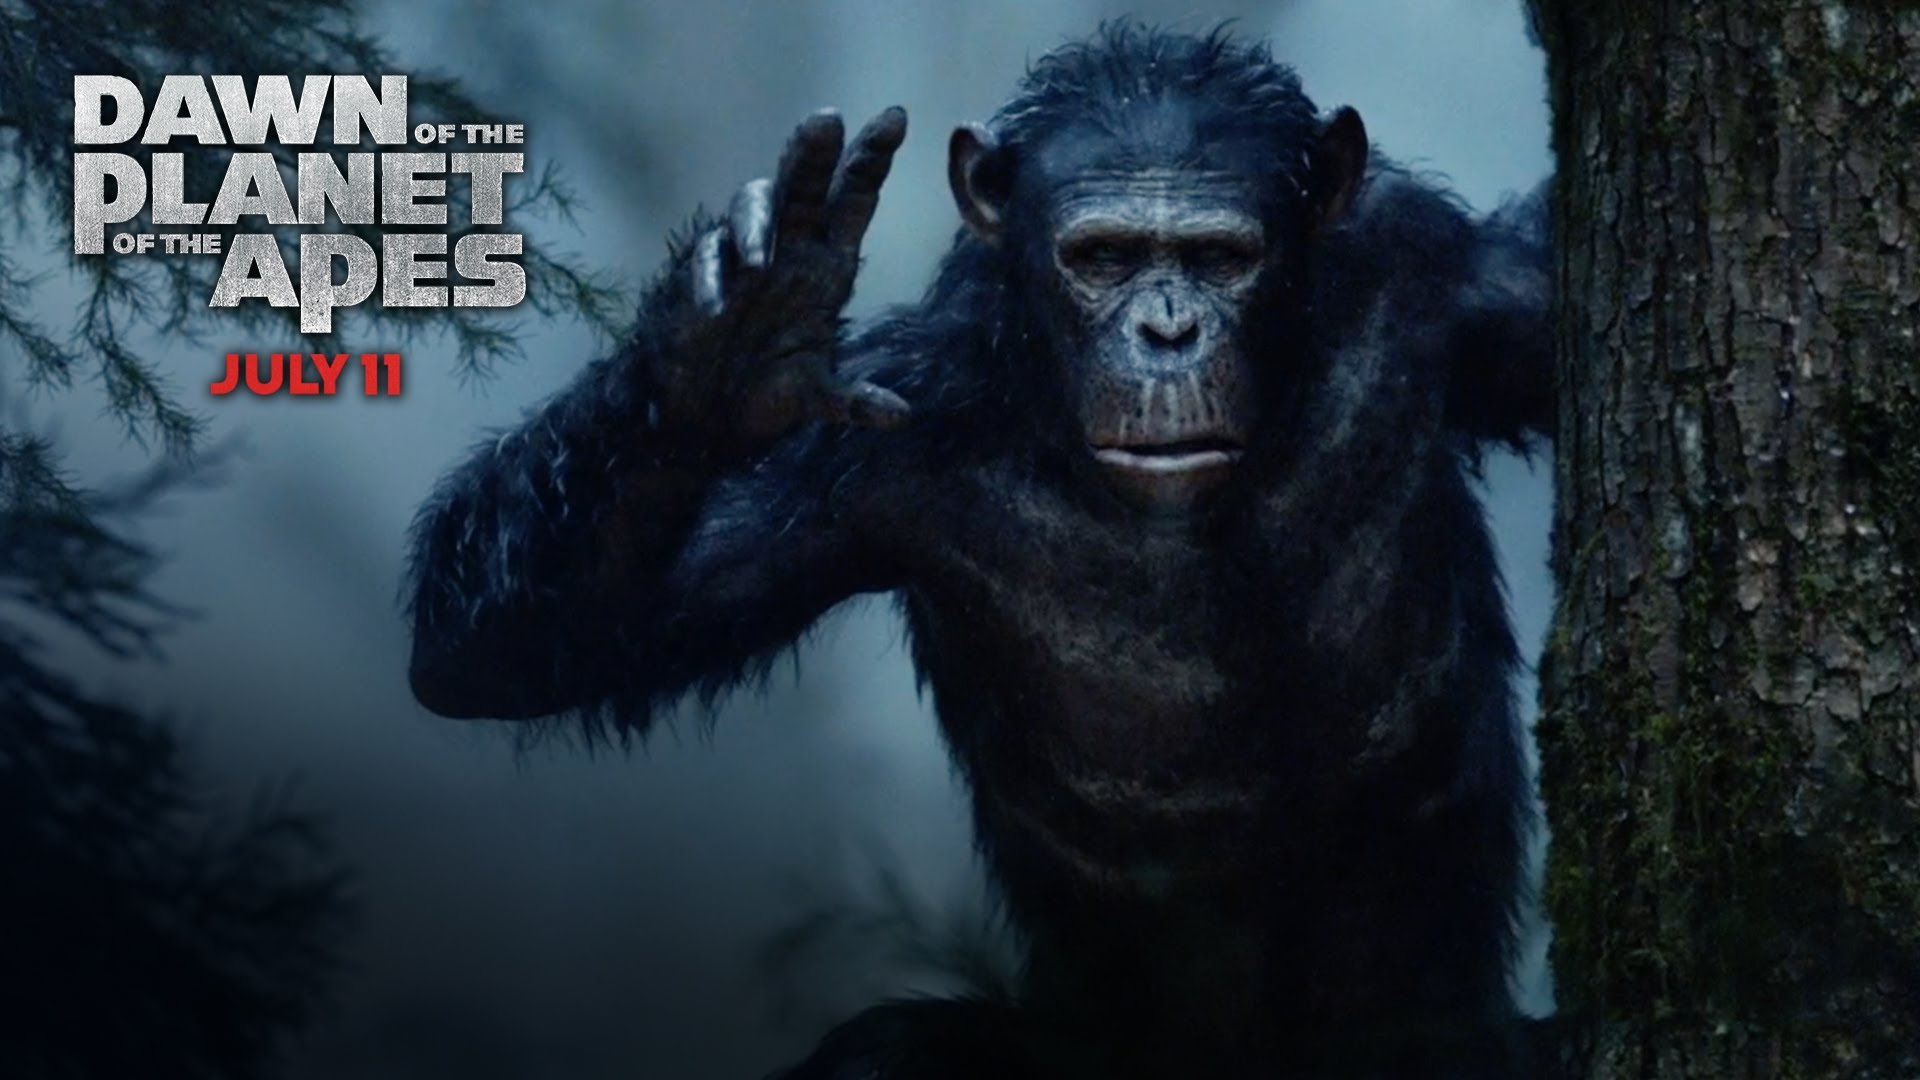 Dawn Of The Planet Of The Apes Wallpaper 5 Wallpapersbq